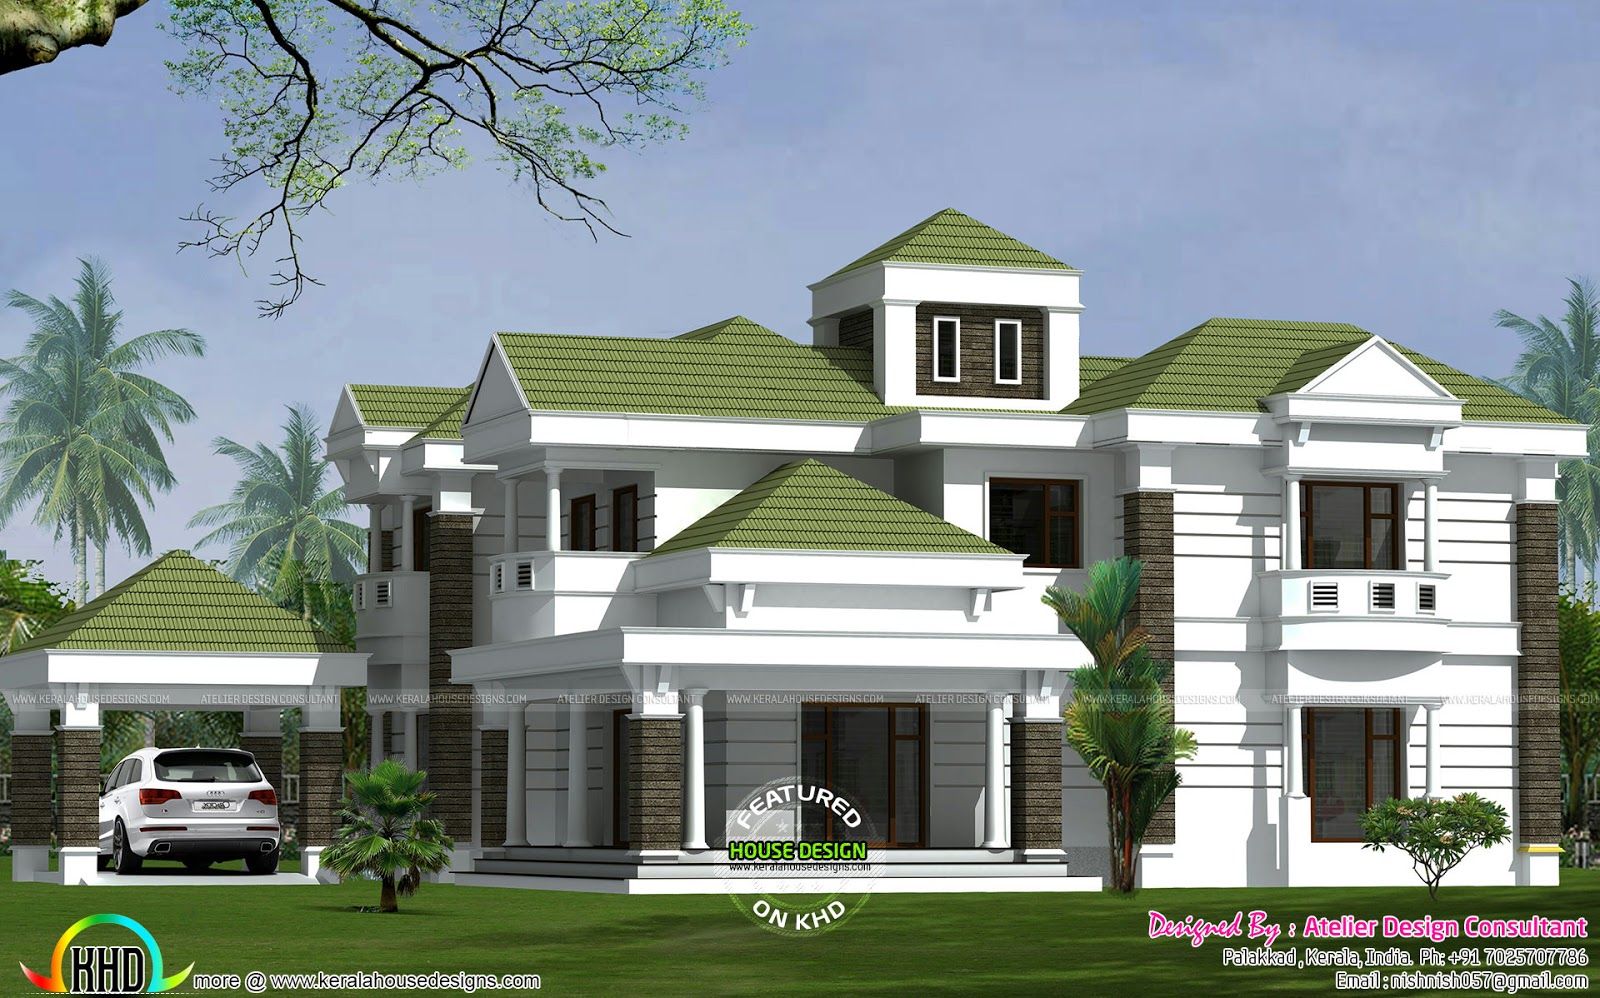 colonial model green roof home - Home Design Consultant